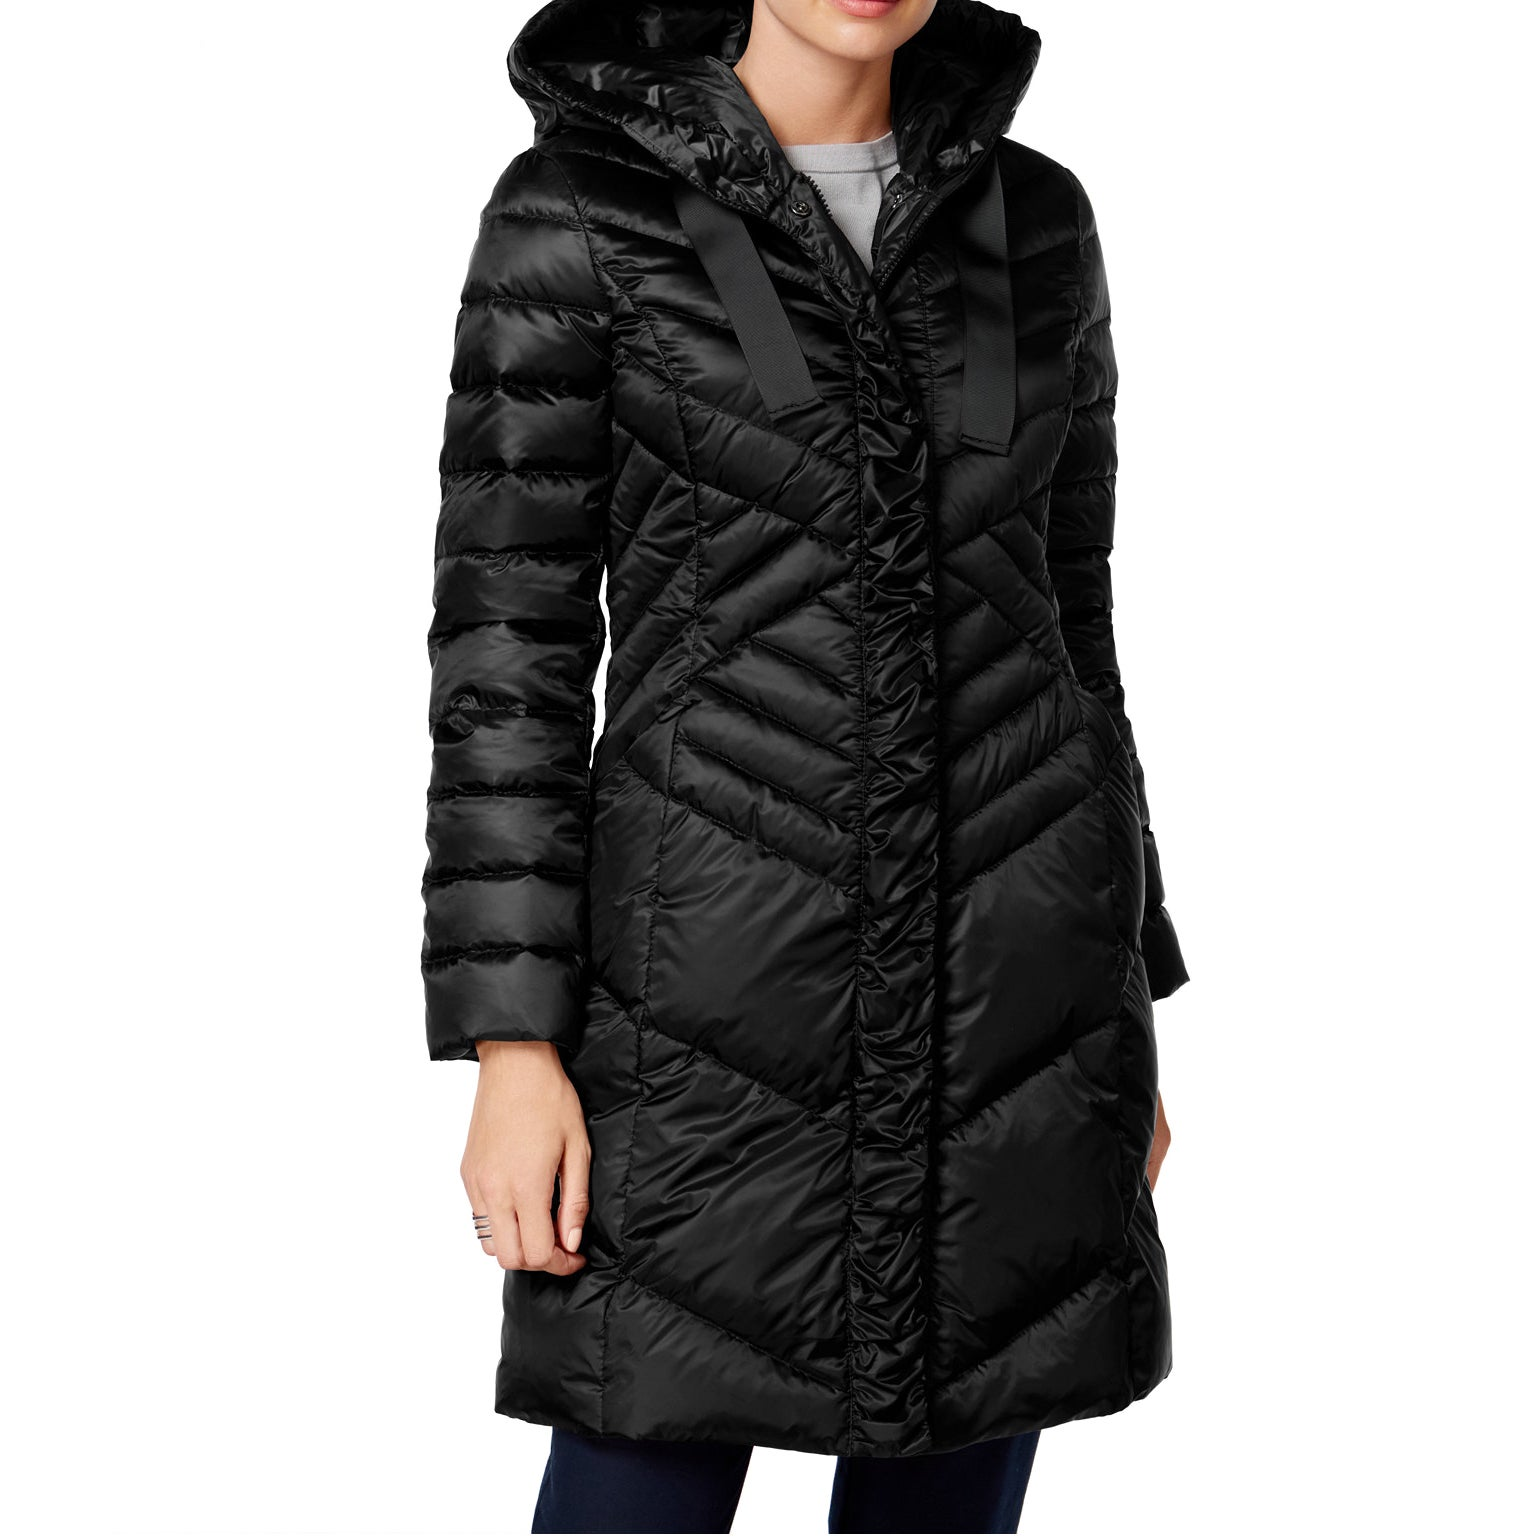 f3c19d6a1c Shop T Tahari Noelle Black Diagonal Quilted Down Coat - On Sale - Free  Shipping Today - Overstock - 13785091